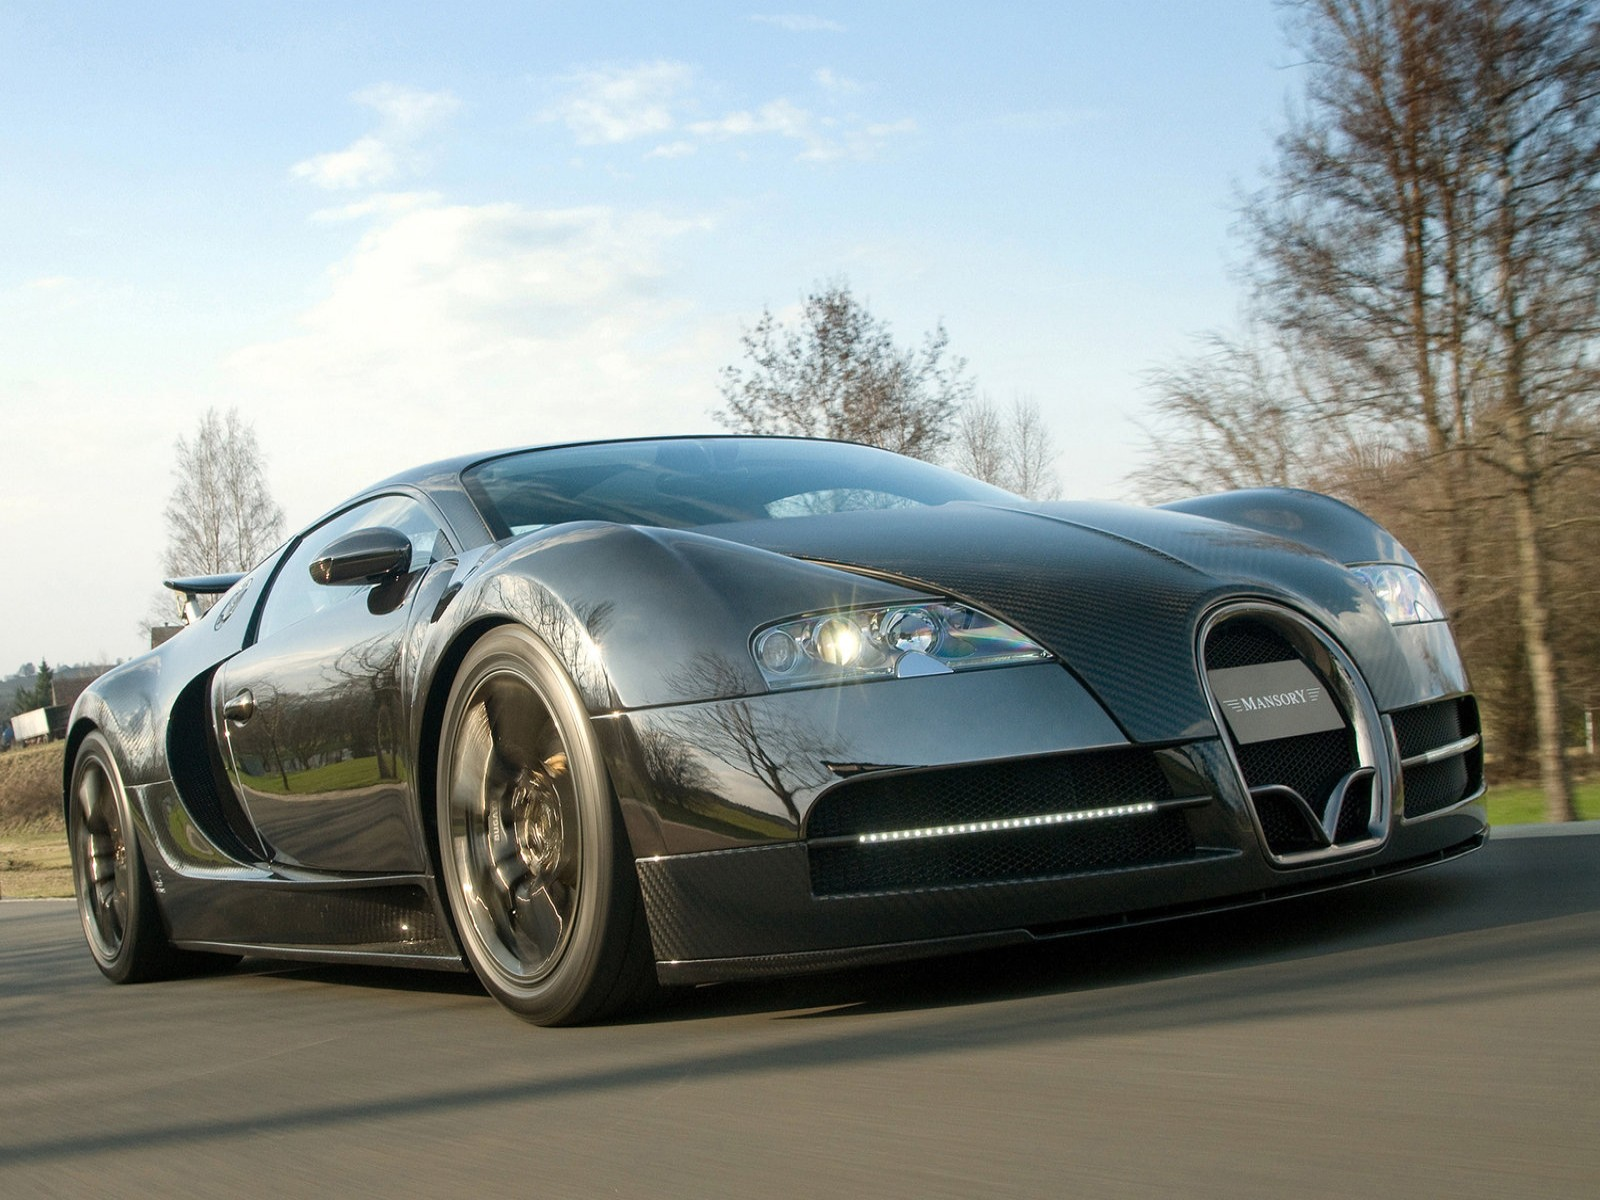 car pictures mansory bugatti veyron linea vincero 2009. Black Bedroom Furniture Sets. Home Design Ideas